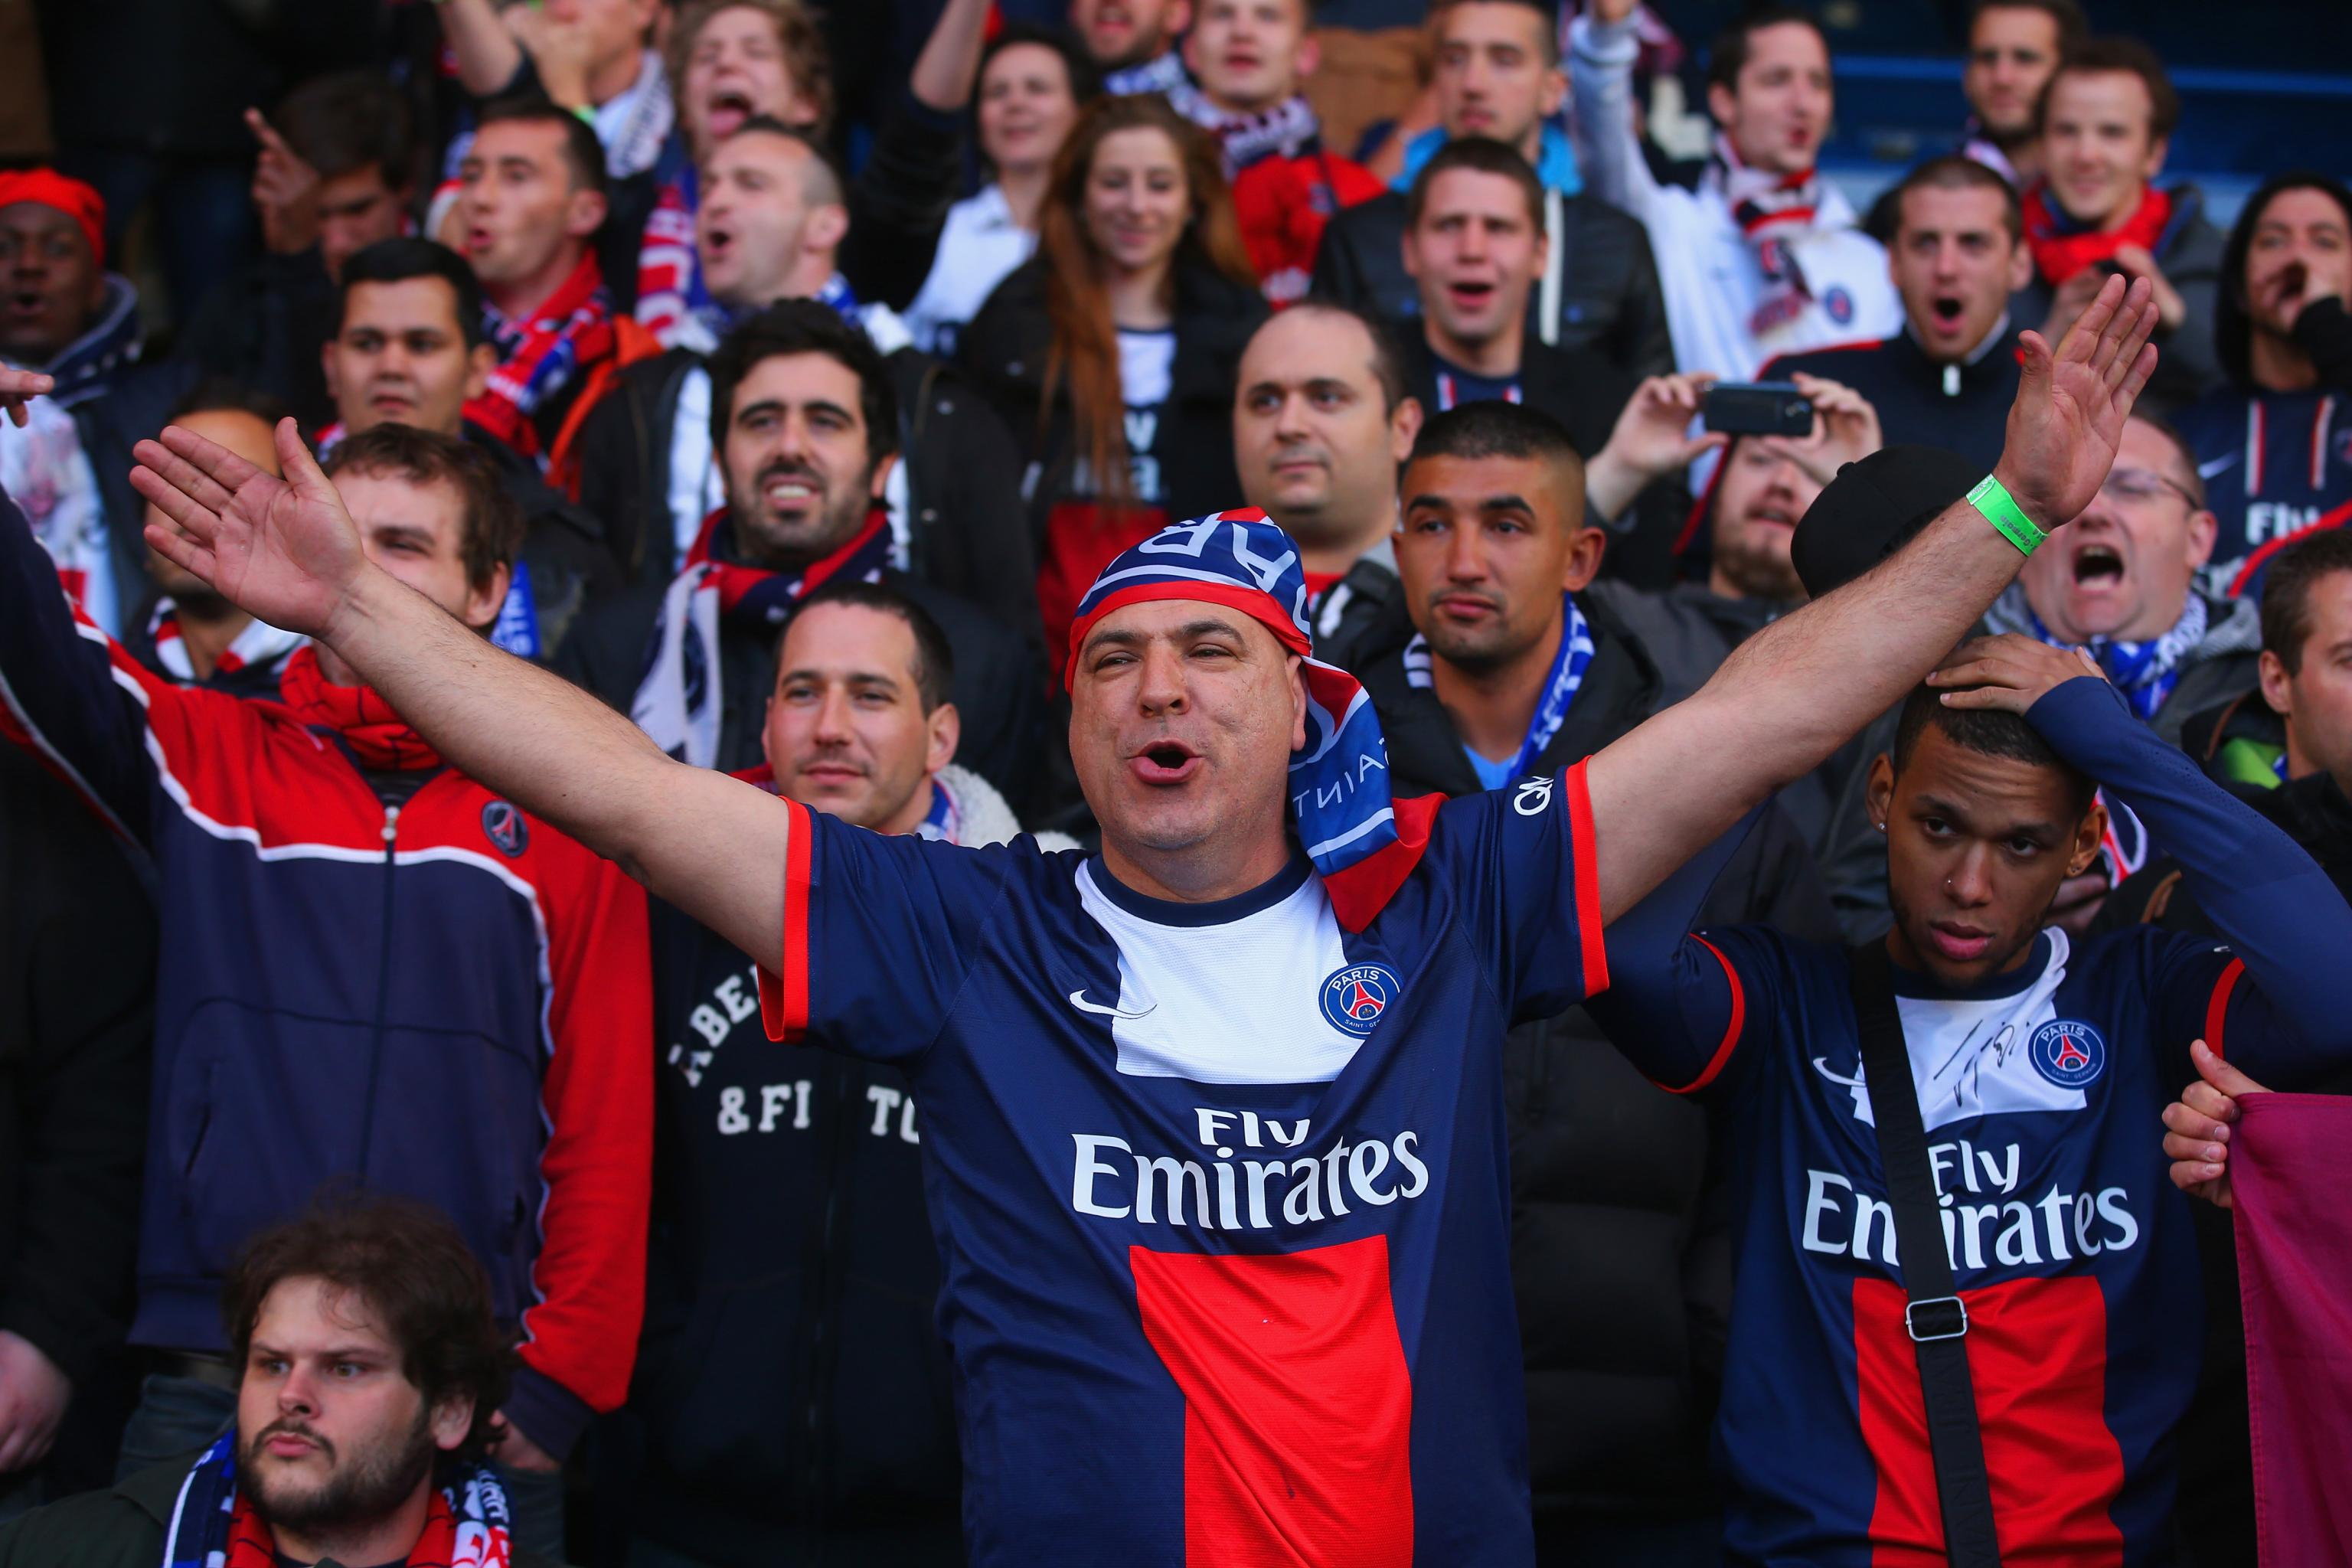 Uefa Open Disciplinary Proceedings For Alleged Racism By Psg Fans Vs Chelsea Bleacher Report Latest News Videos And Highlights